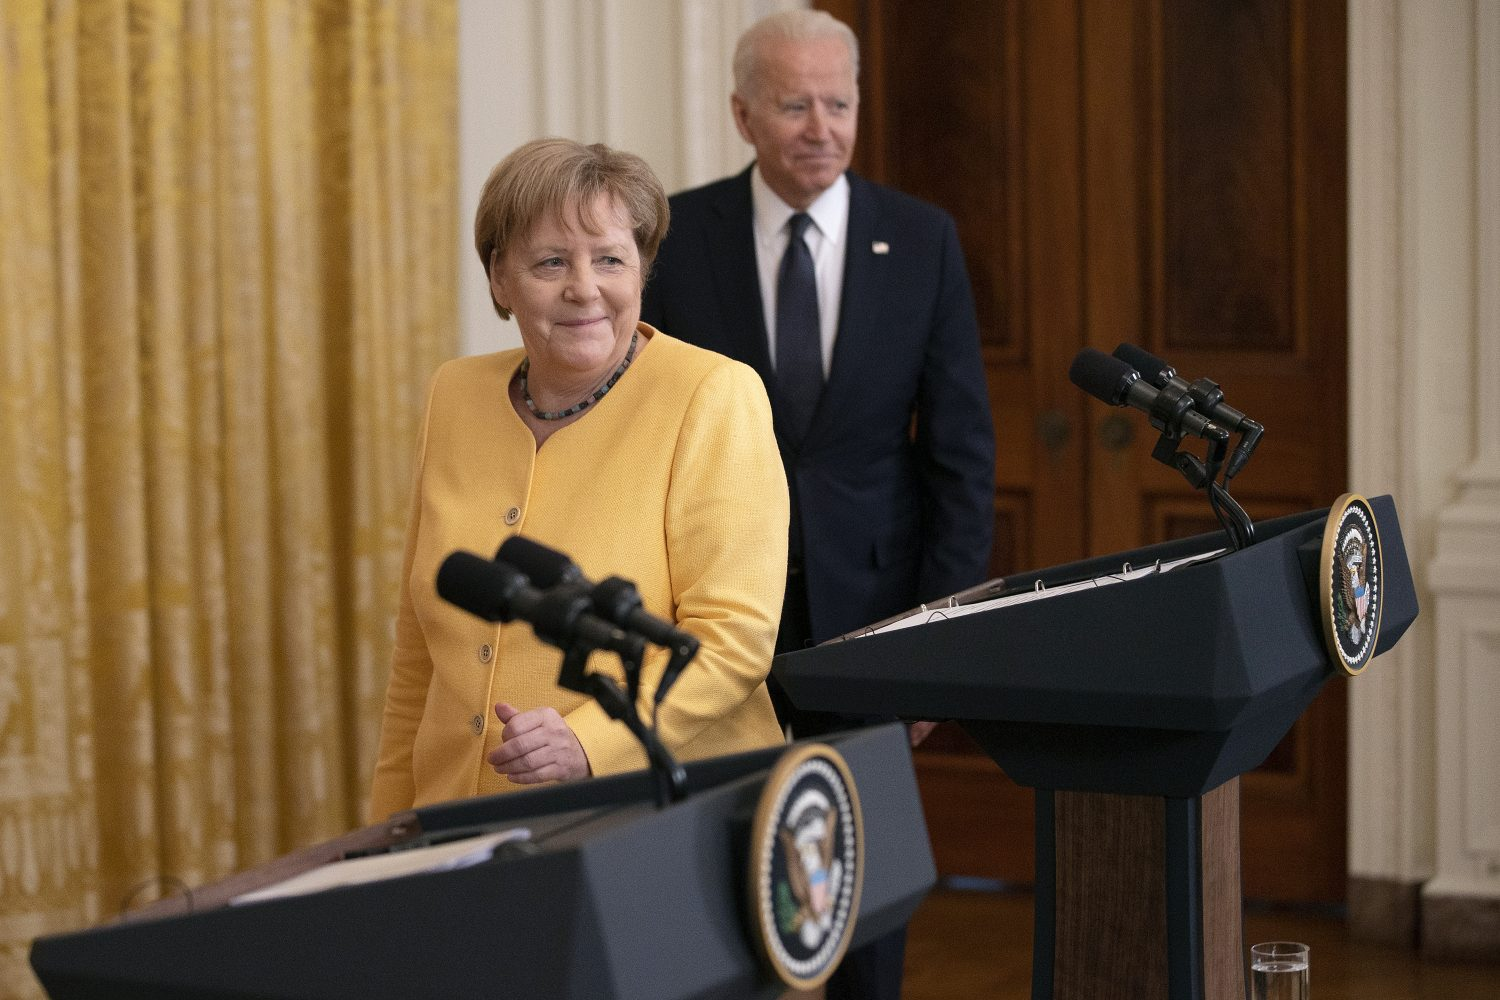 German Chancellor Angela Merkel and U.S. President Joe Biden take the stage for a joint news conference in the East Room of the White House in Washington on July 15.